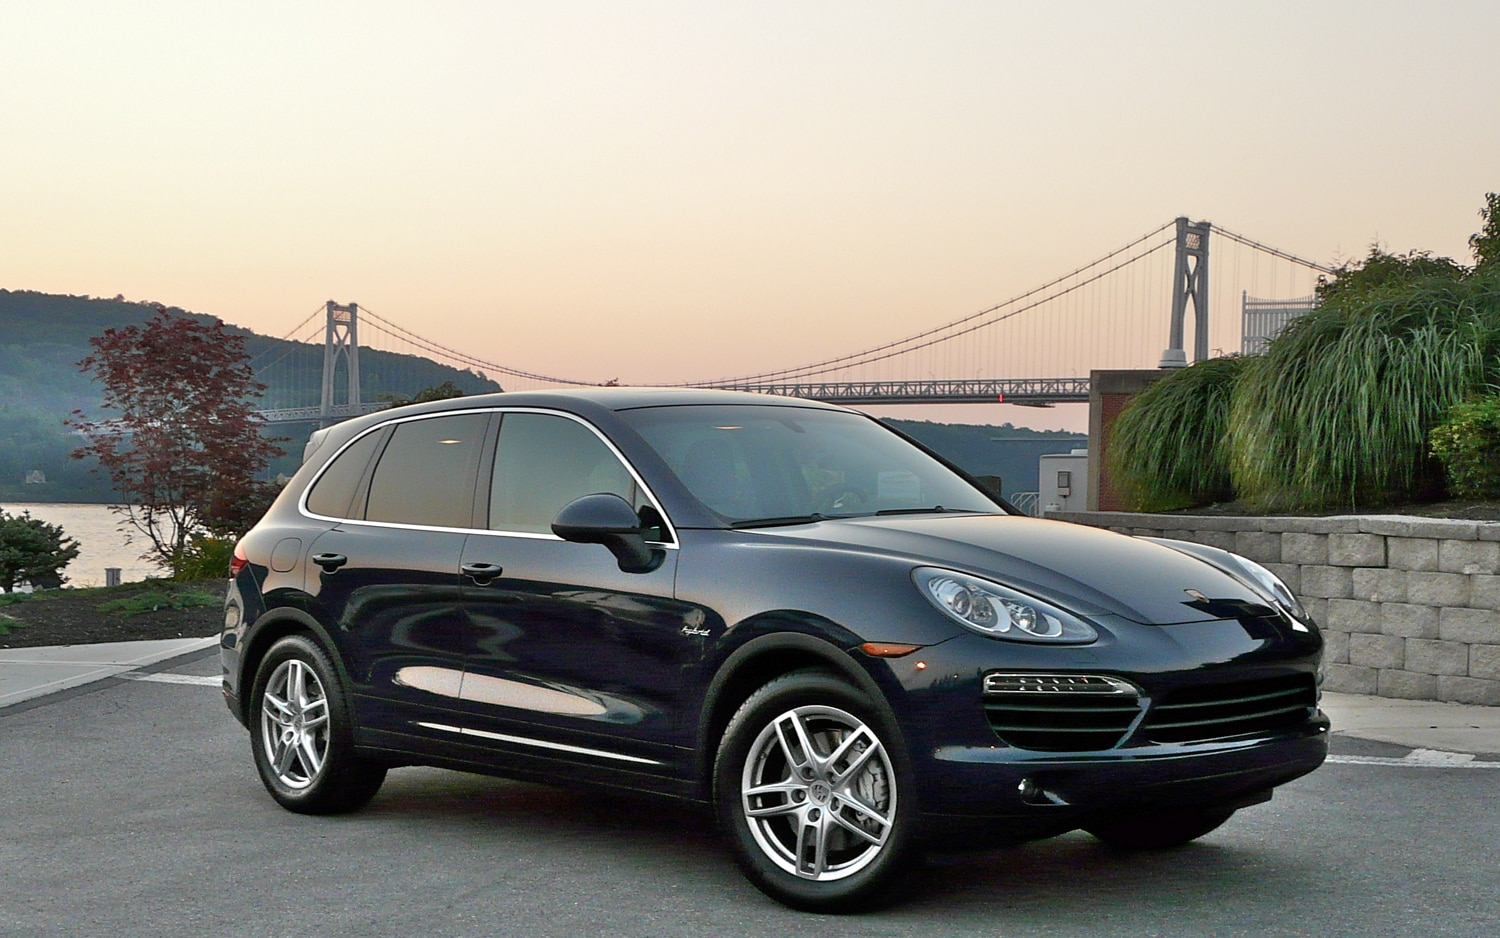 2011 Porsche Cayenne S Hybrid Right Front View1